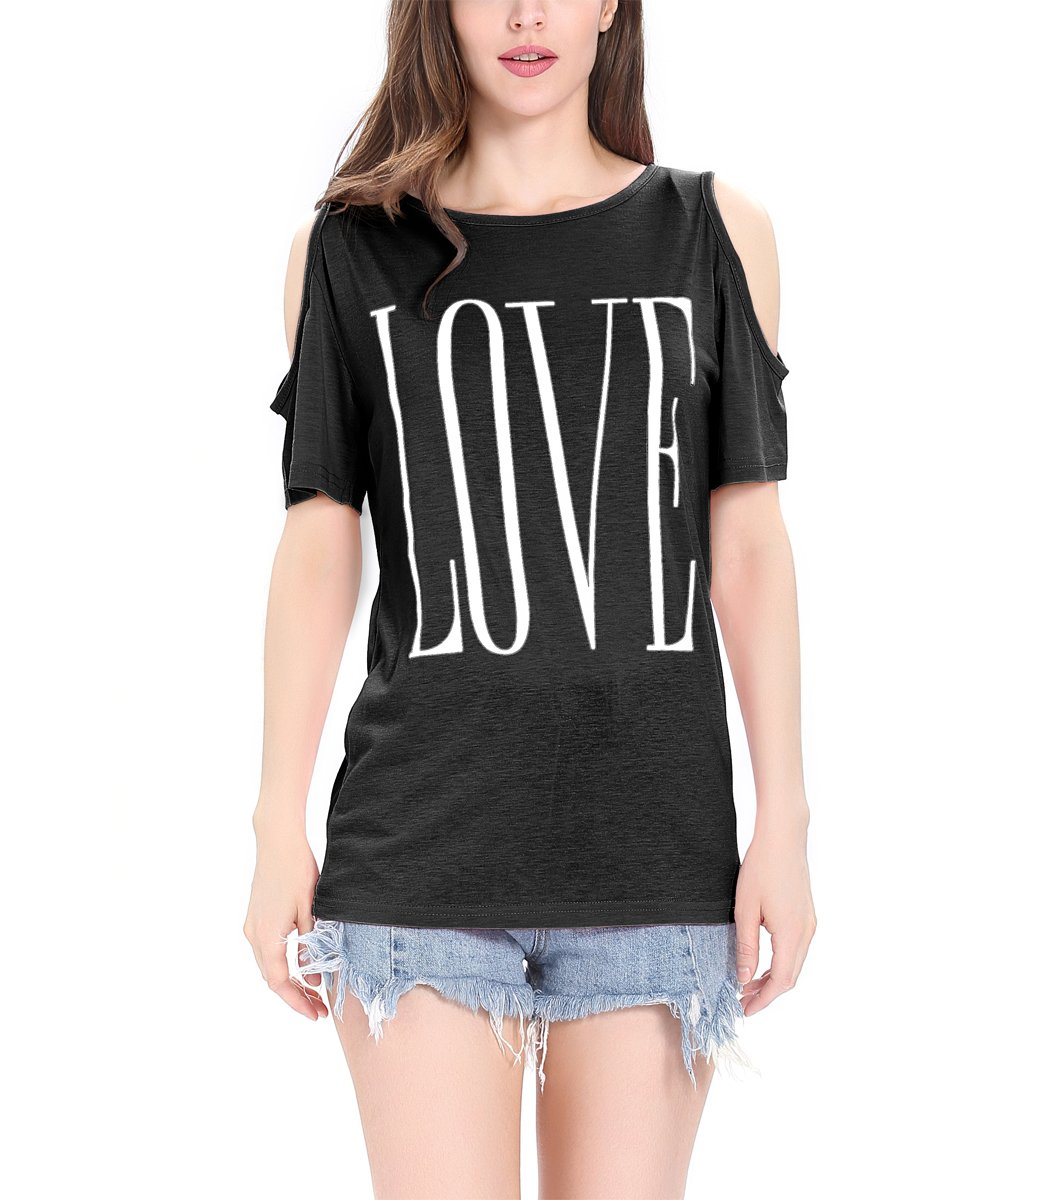 Finyosee Women's Cute Cold Shoulder, Round Neck, Short Sleeve Tops, Base T-Shirt with Love Print